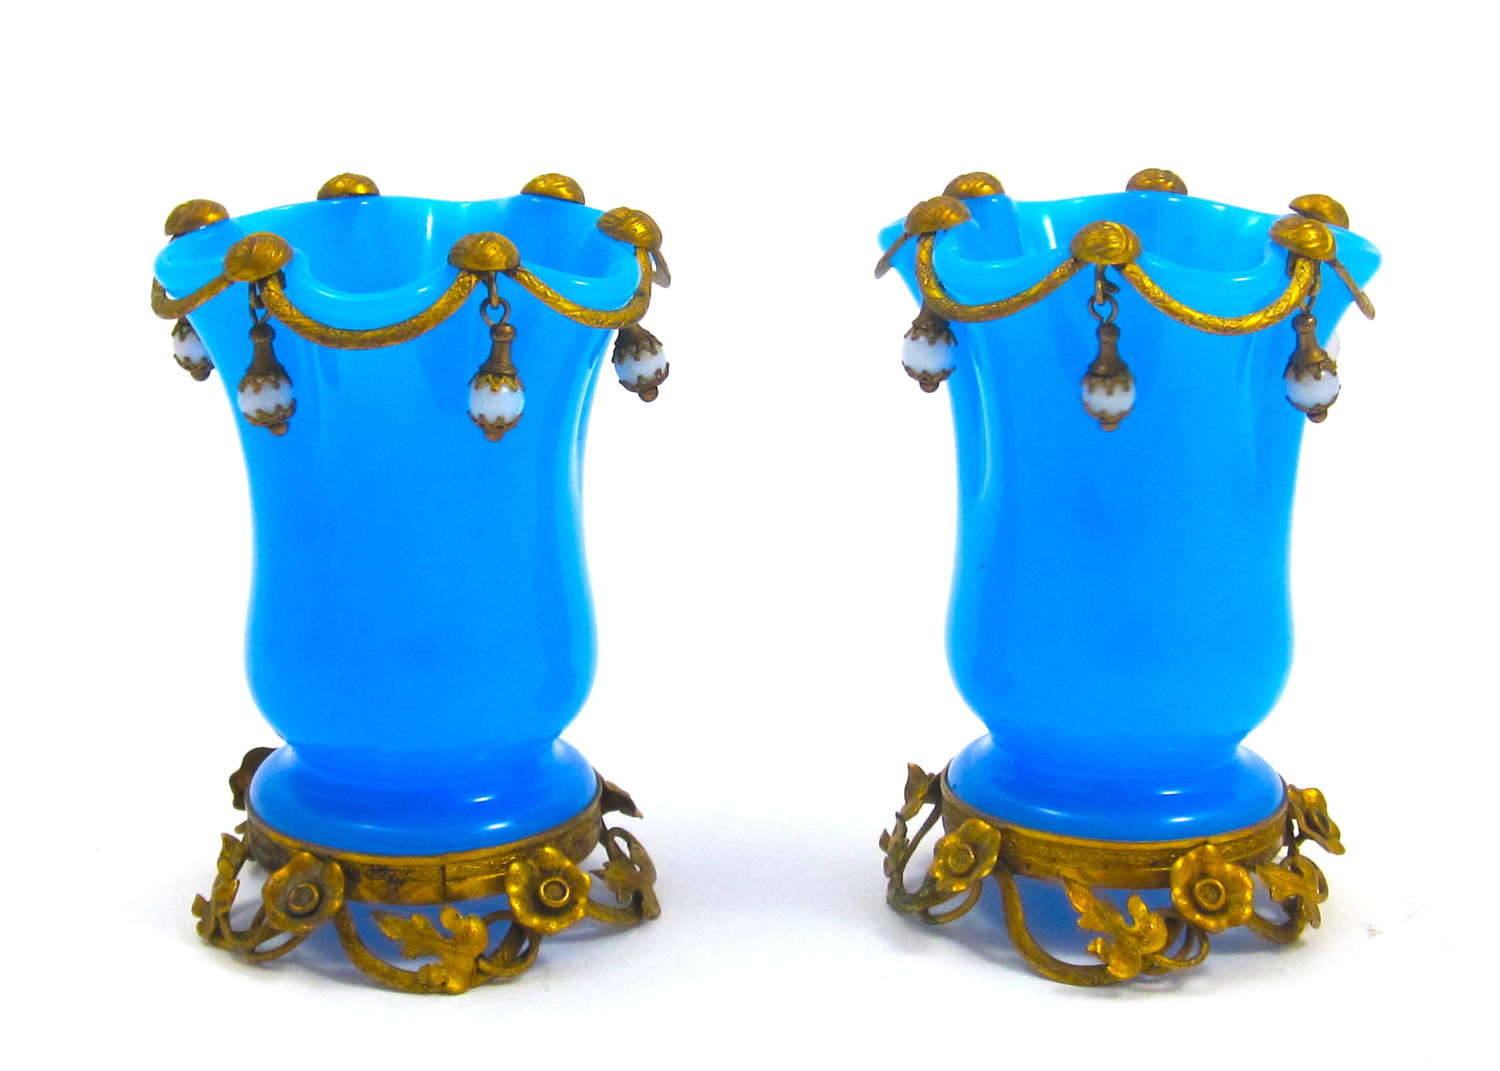 Pair of Antique French Palais Royal Blue Opaline Glass Vases